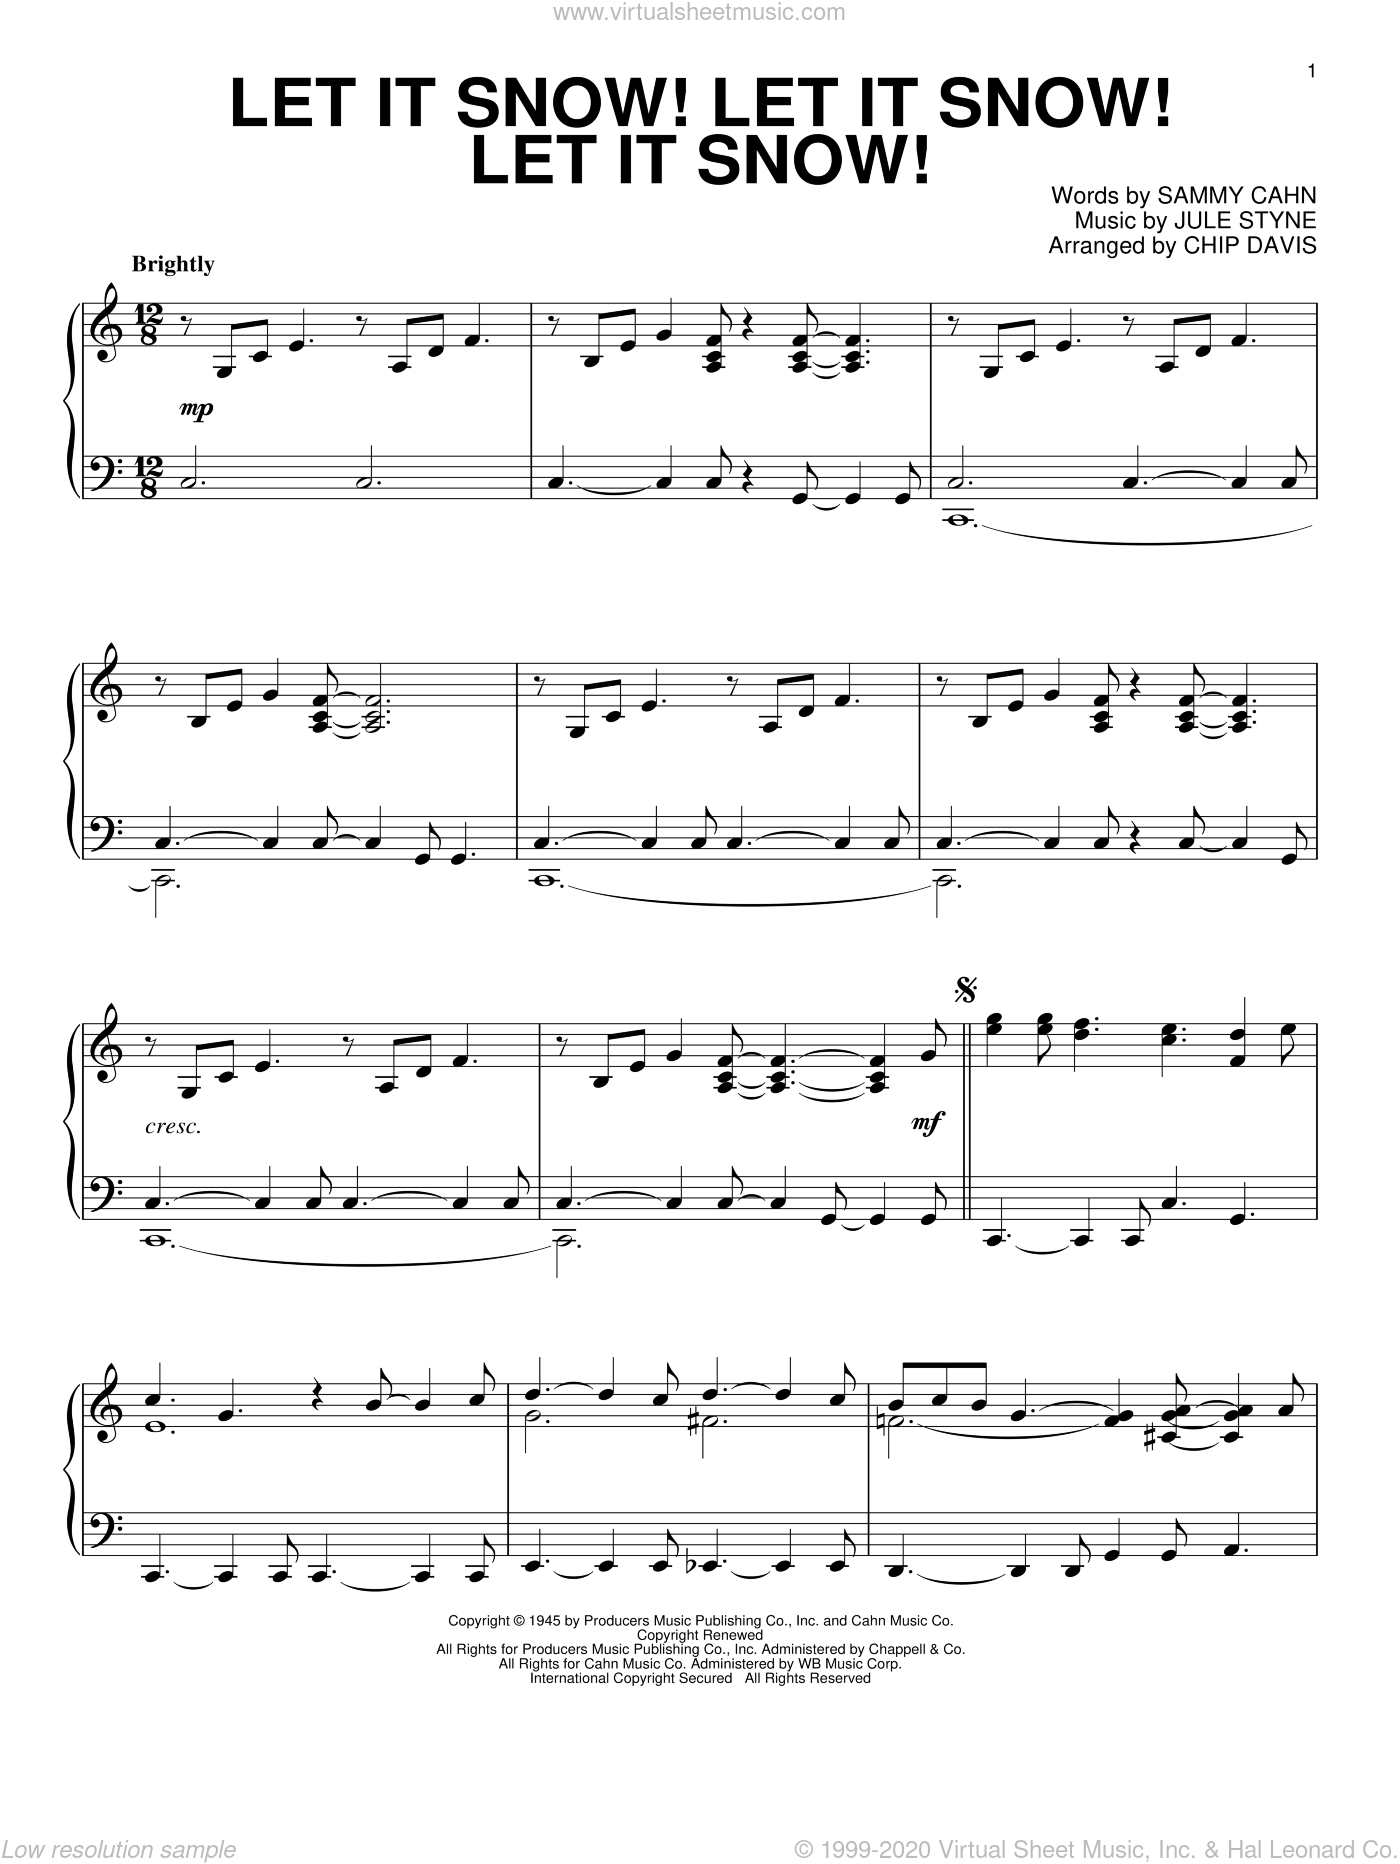 Let It Snow! Let It Snow! Let It Snow! sheet music for piano solo by Sammy Cahn